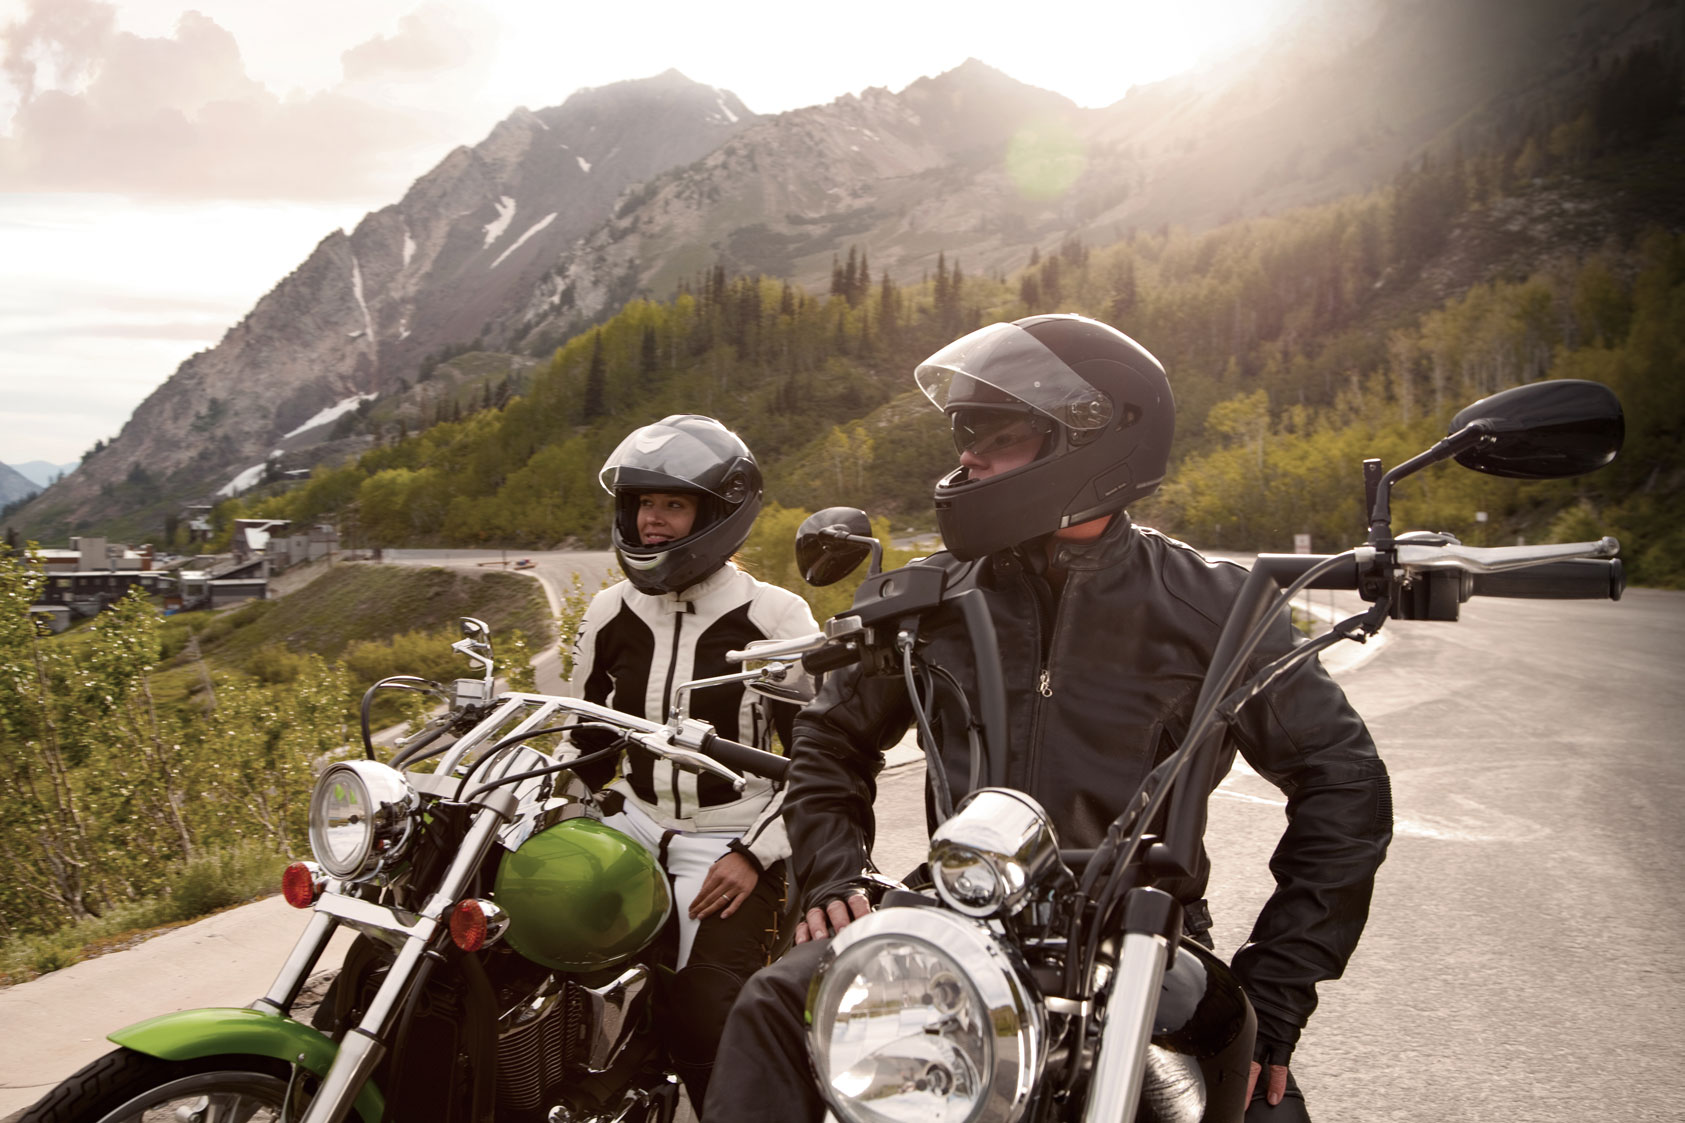 How to Fit a Motorcycle Helmet